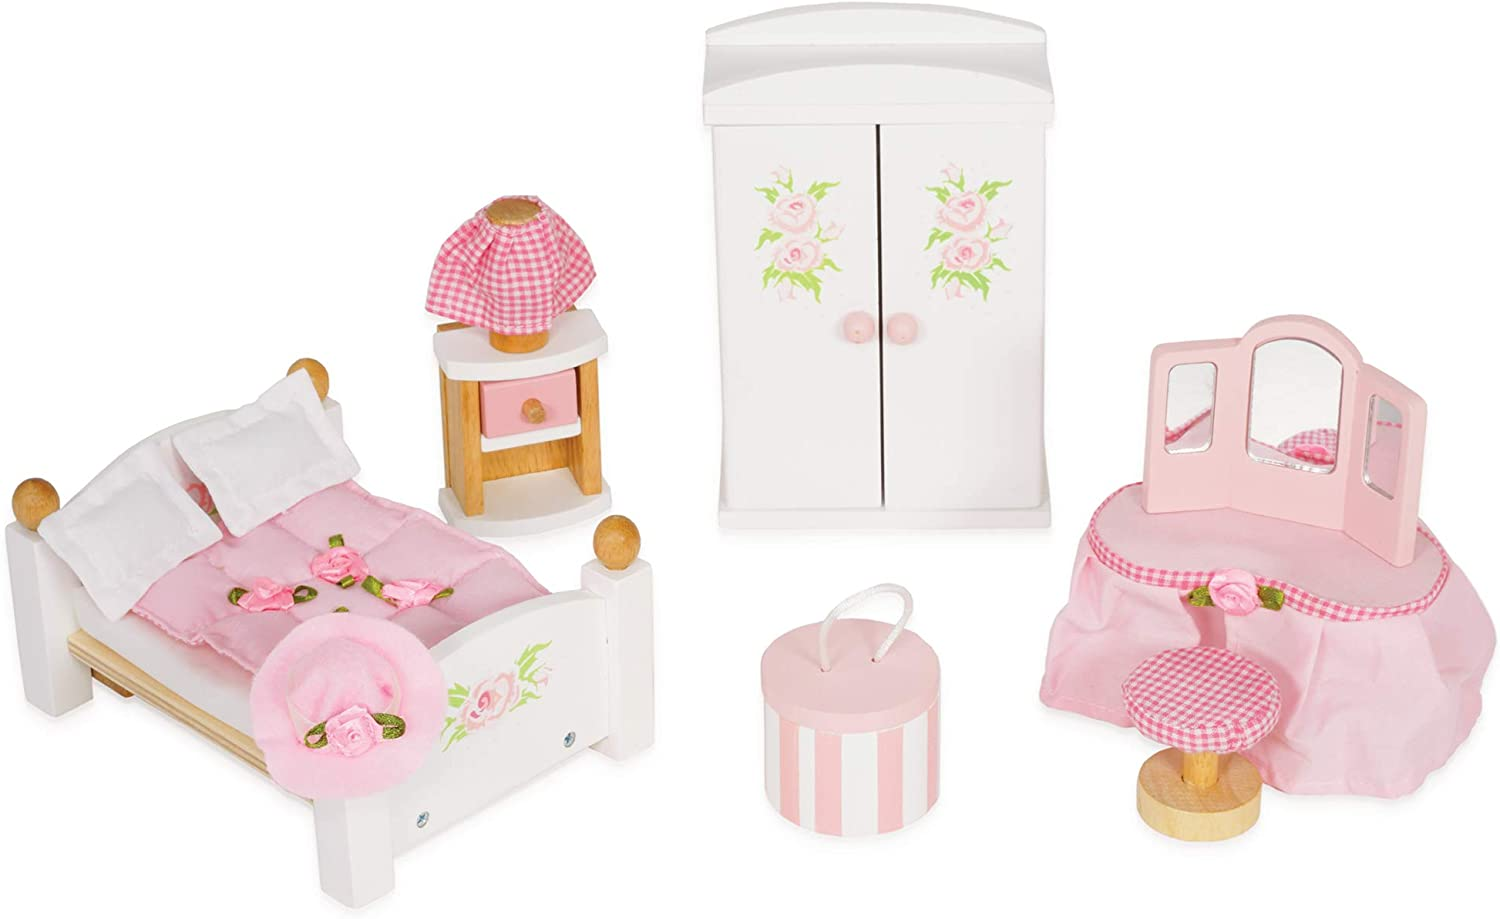 Le Toy Van - Wooden Daisylane Master Bedroom Dolls House | Accessories Play Set For Dolls Houses | Girls and Boys Dolls House Furniture Sets - Suitable For Ages 3+